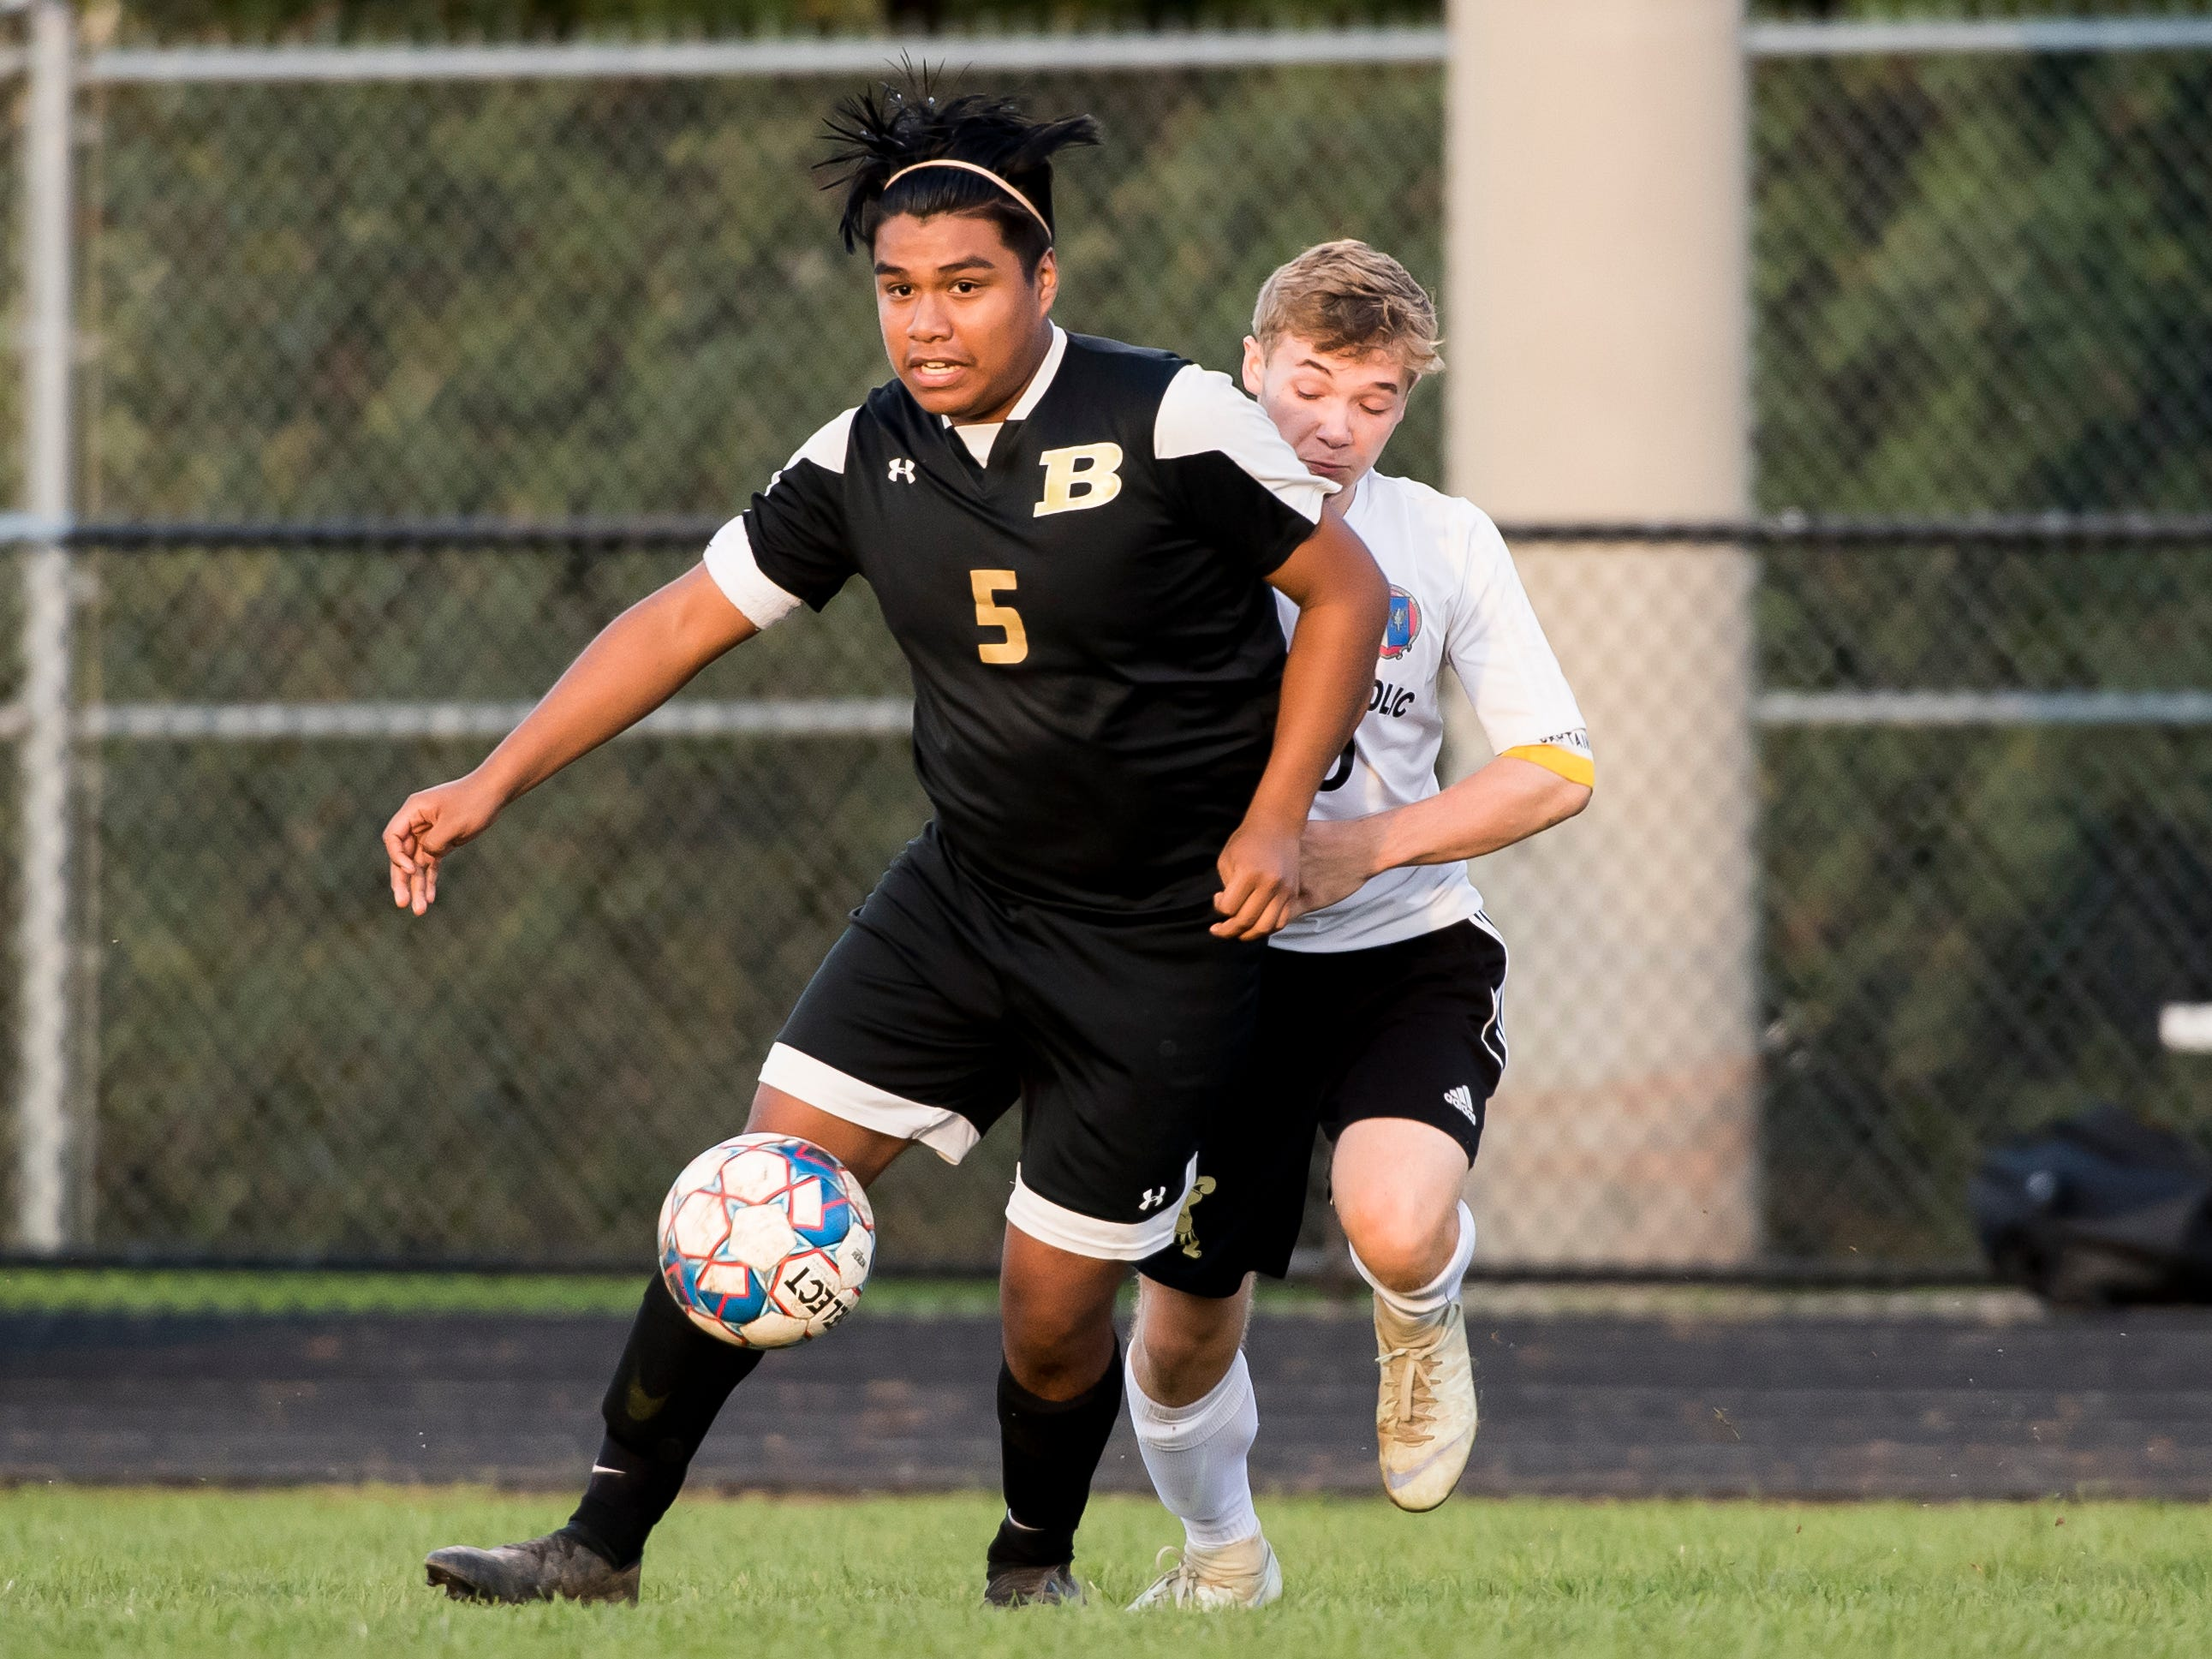 Biglerville's Christian Morales (5) defends against Delone Catholic's Noah Roeder on Wednesday, October 3, 2018. The Canners won 3-0.